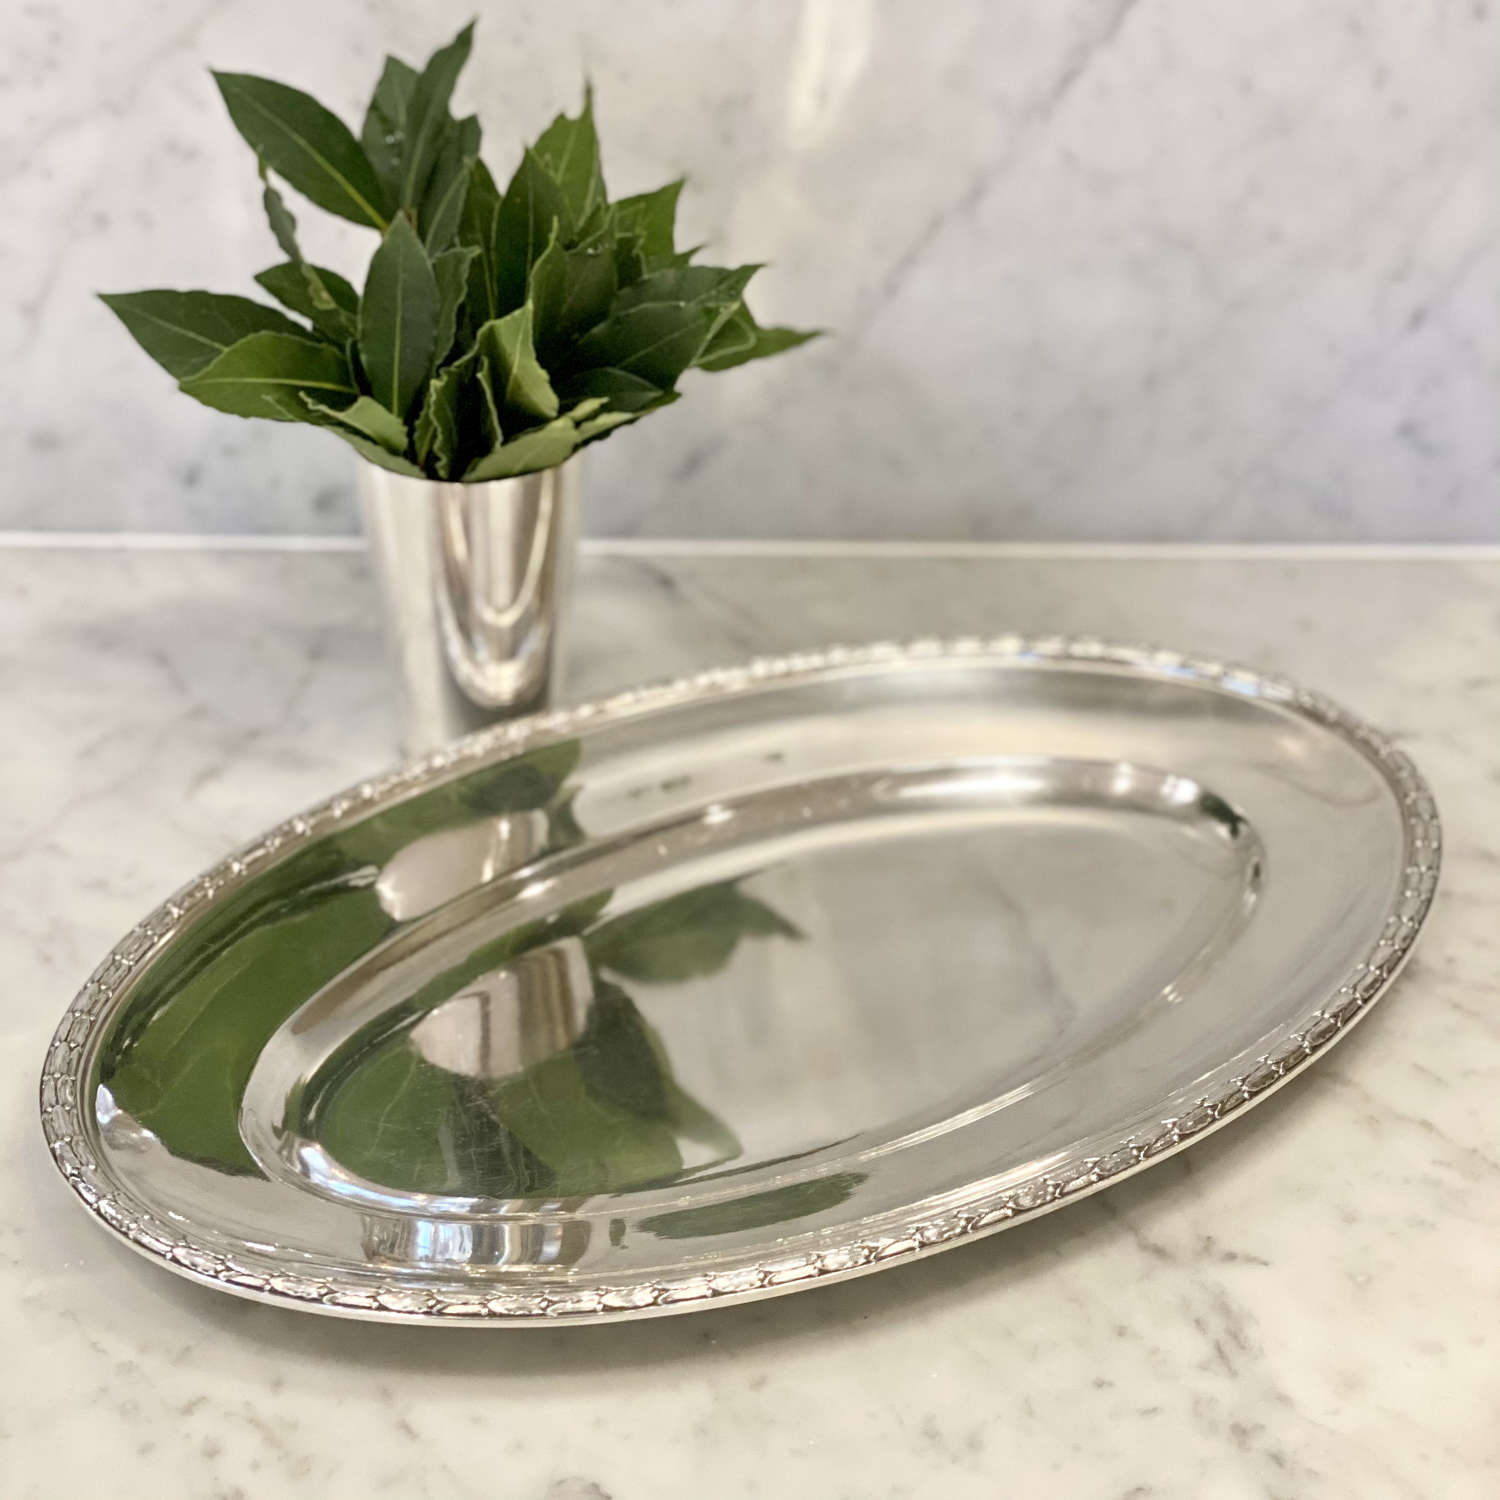 Oval laurel wreath rimmed silver plated platter